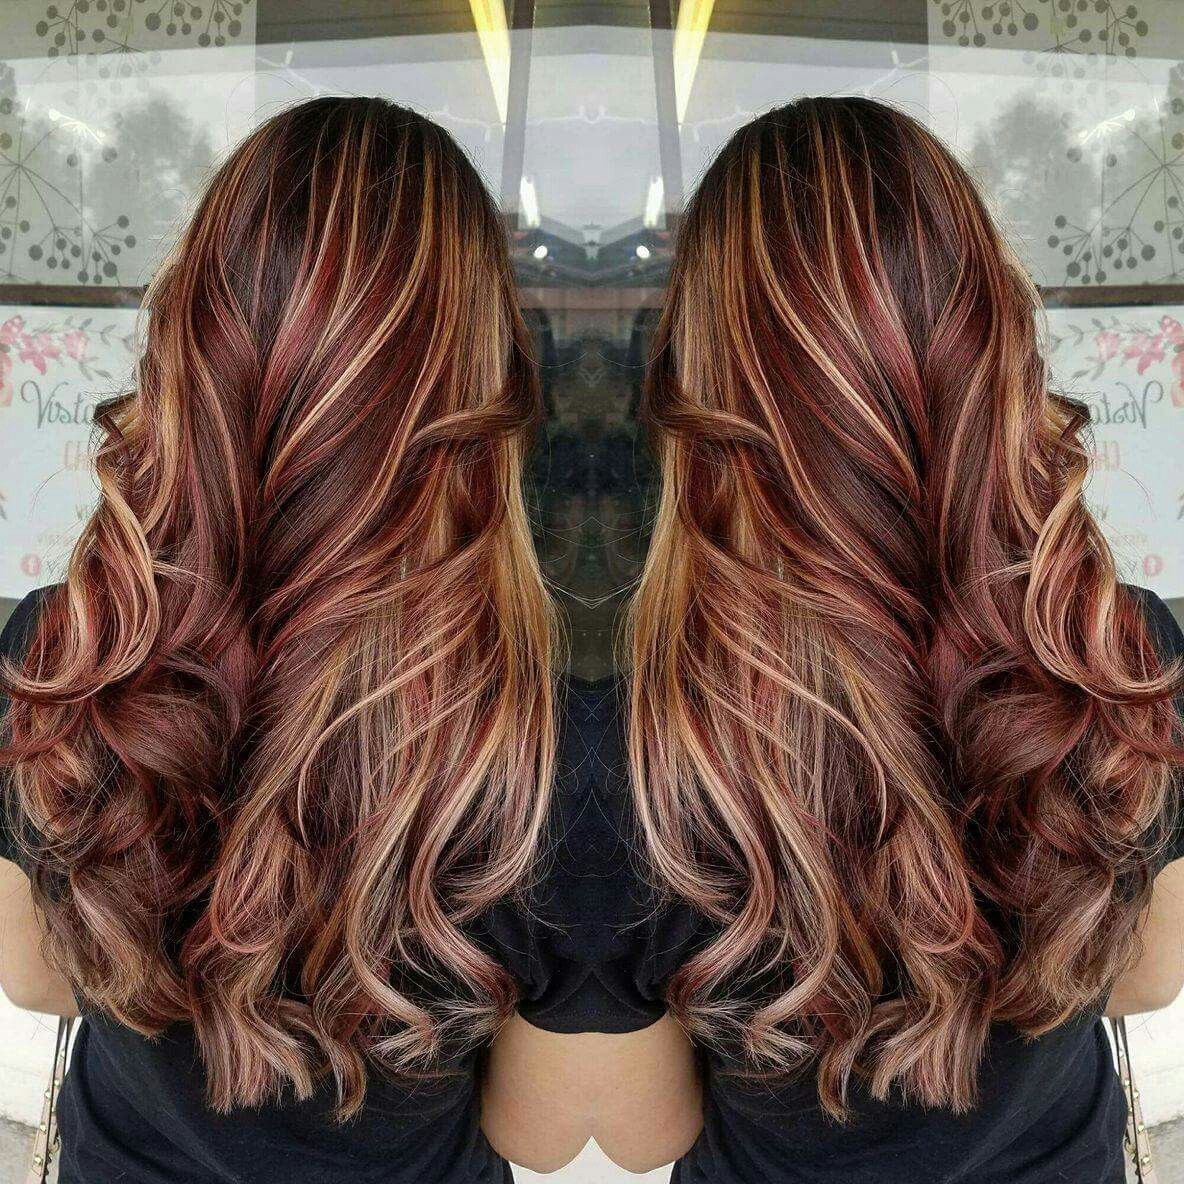 Red Hair Balayage Brown Hair Blonde Highlights Contrast Long Hair C Brown Blonde Hair Dark Brown Hair With Blonde Highlights Red Highlights In Brown Hair